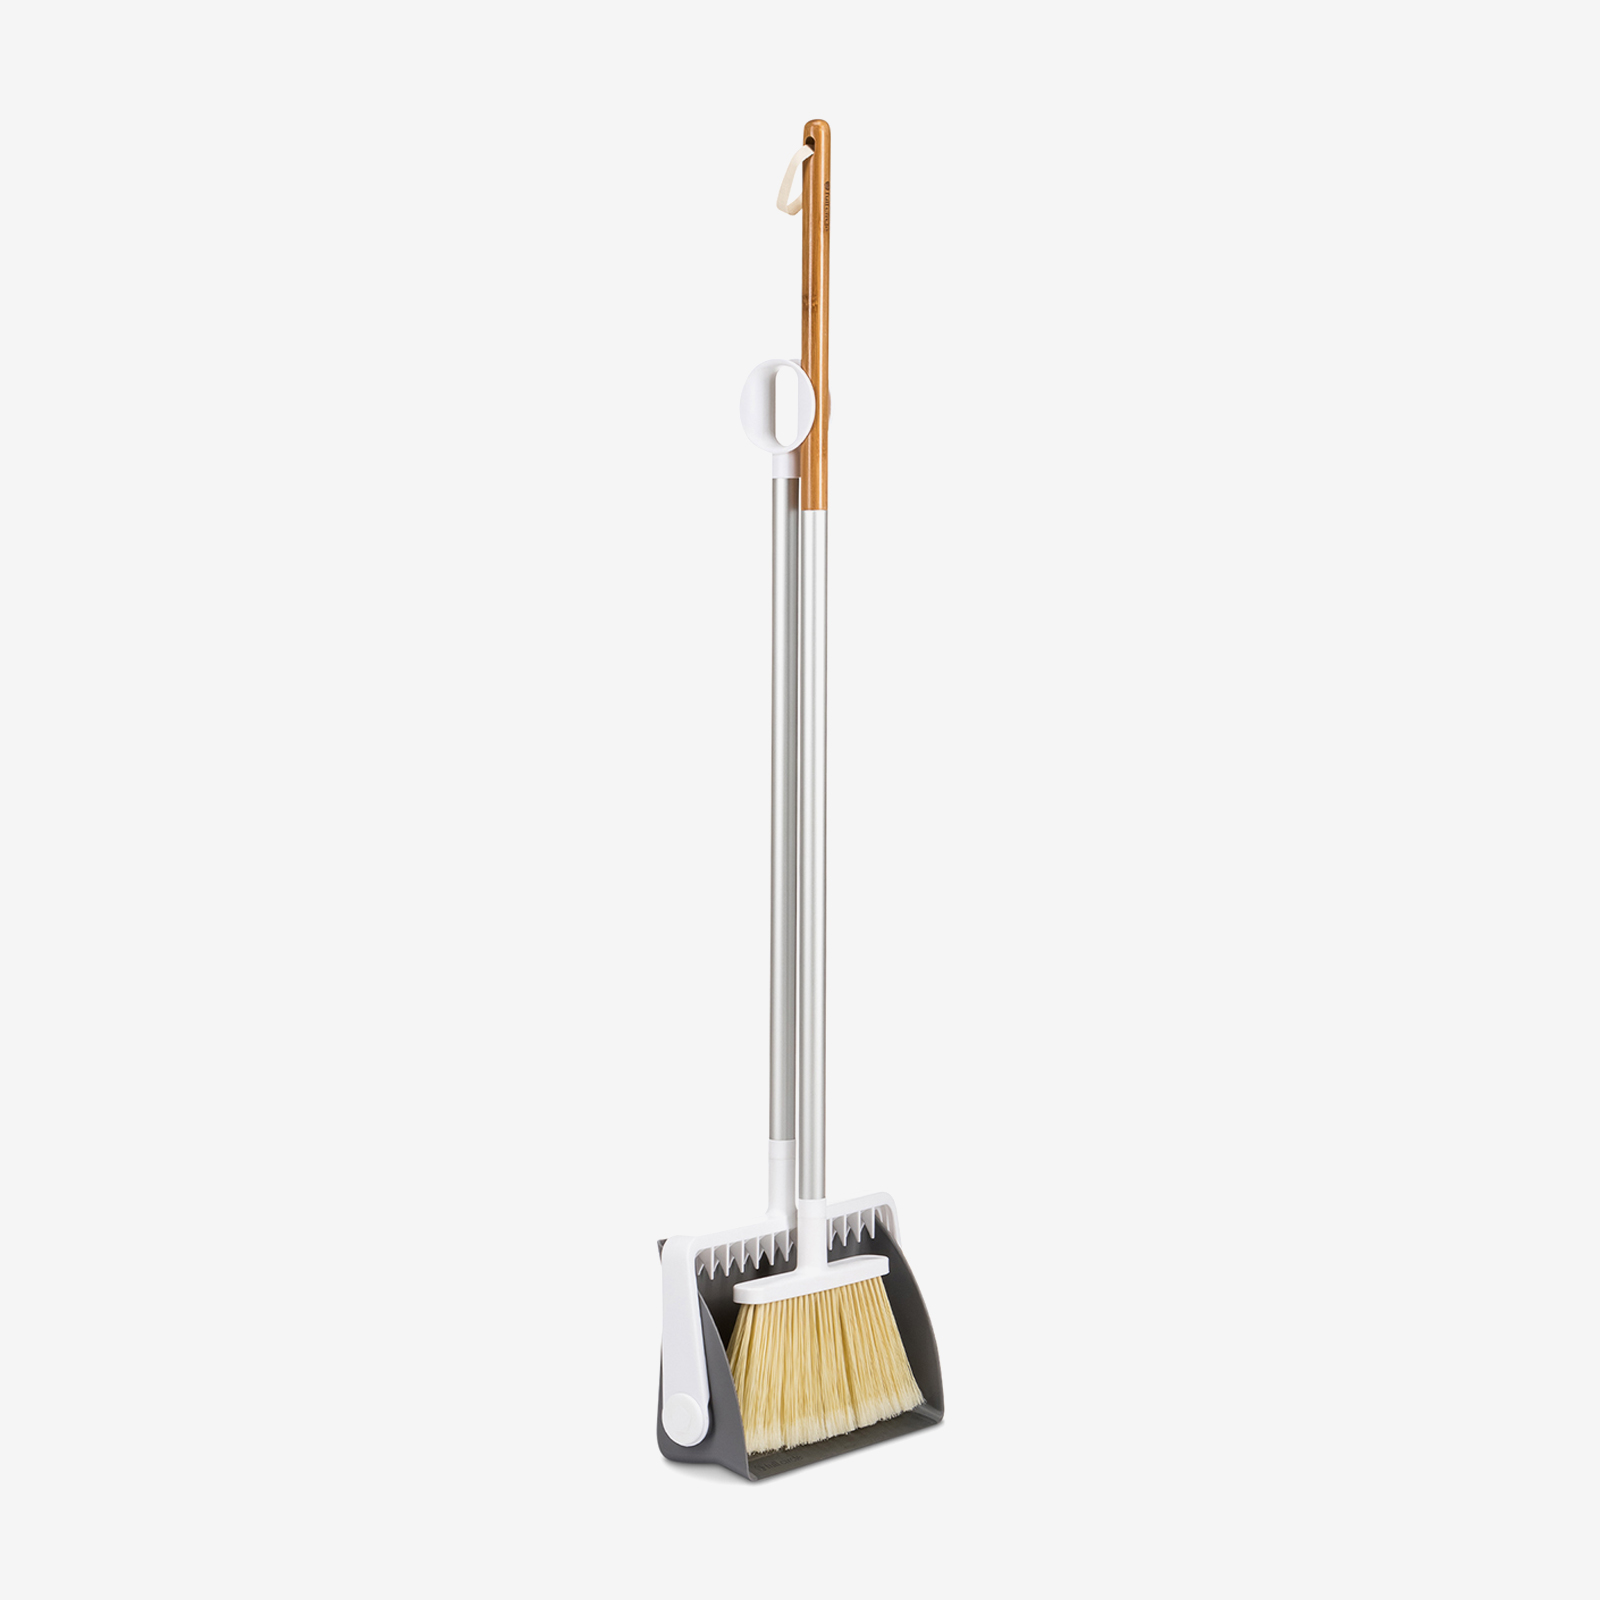 Broom product photography